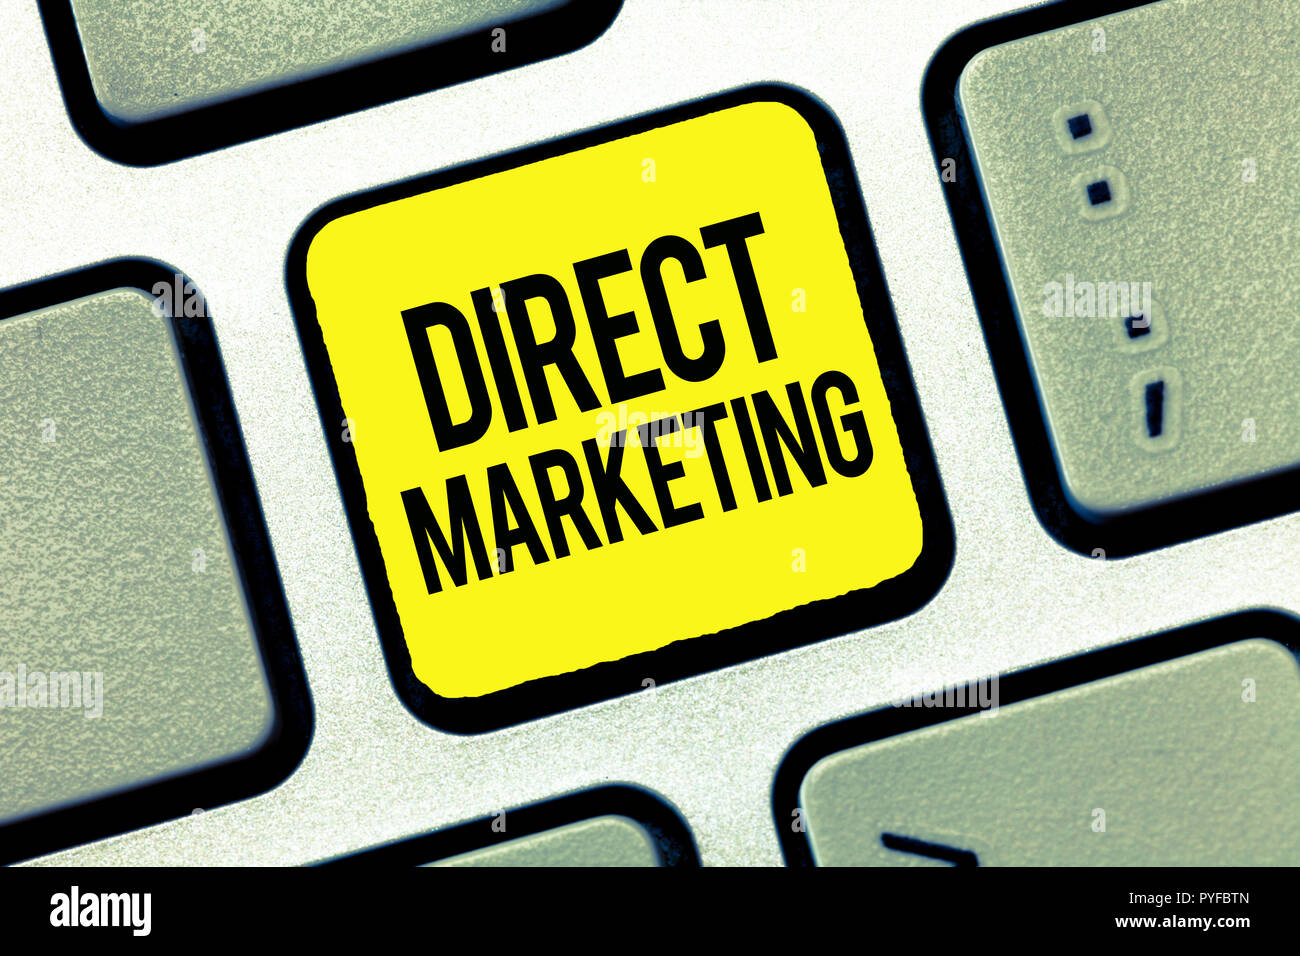 Text sign showing Direct Marketing. Conceptual photo business of selling products or services to public. - Stock Image